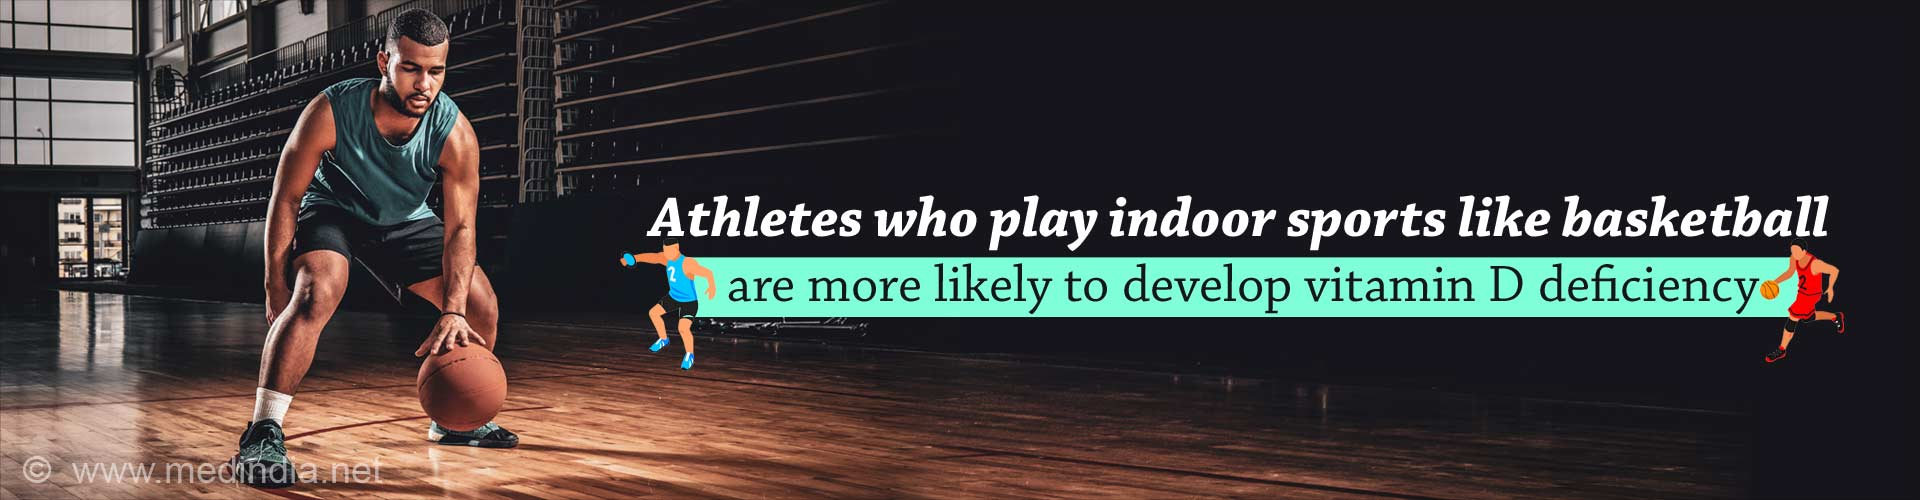 Athletes who play indoor sports like basketball are more likely to develop vitamin D deficiency.